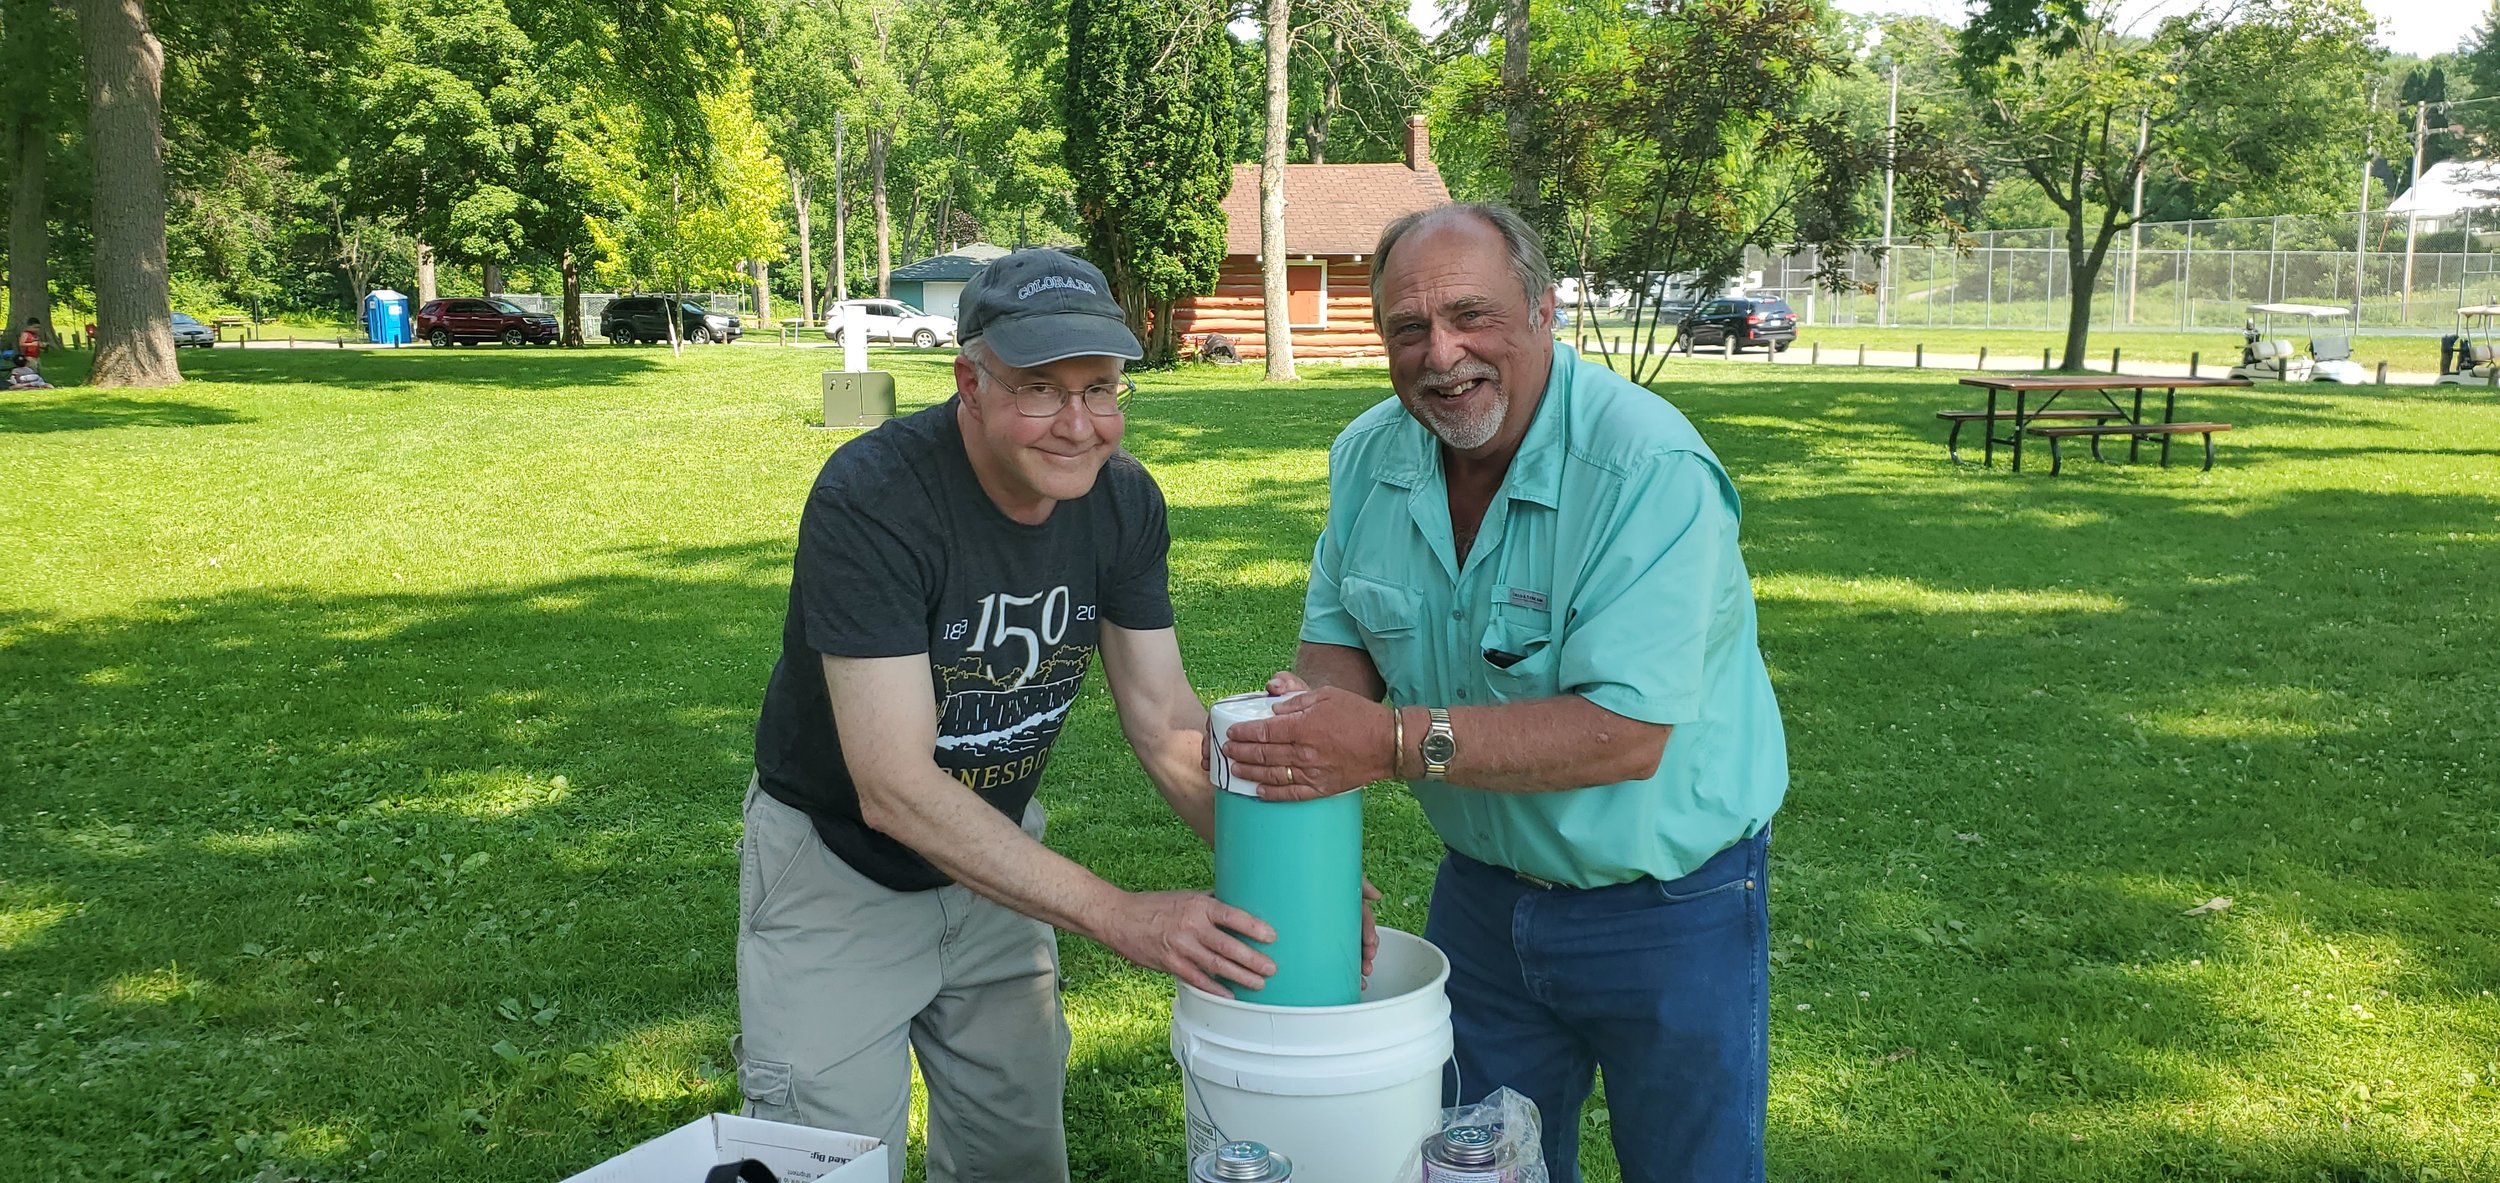 Peter Torkelson and Walter Bradley preparing Lanesboro Time Capsule